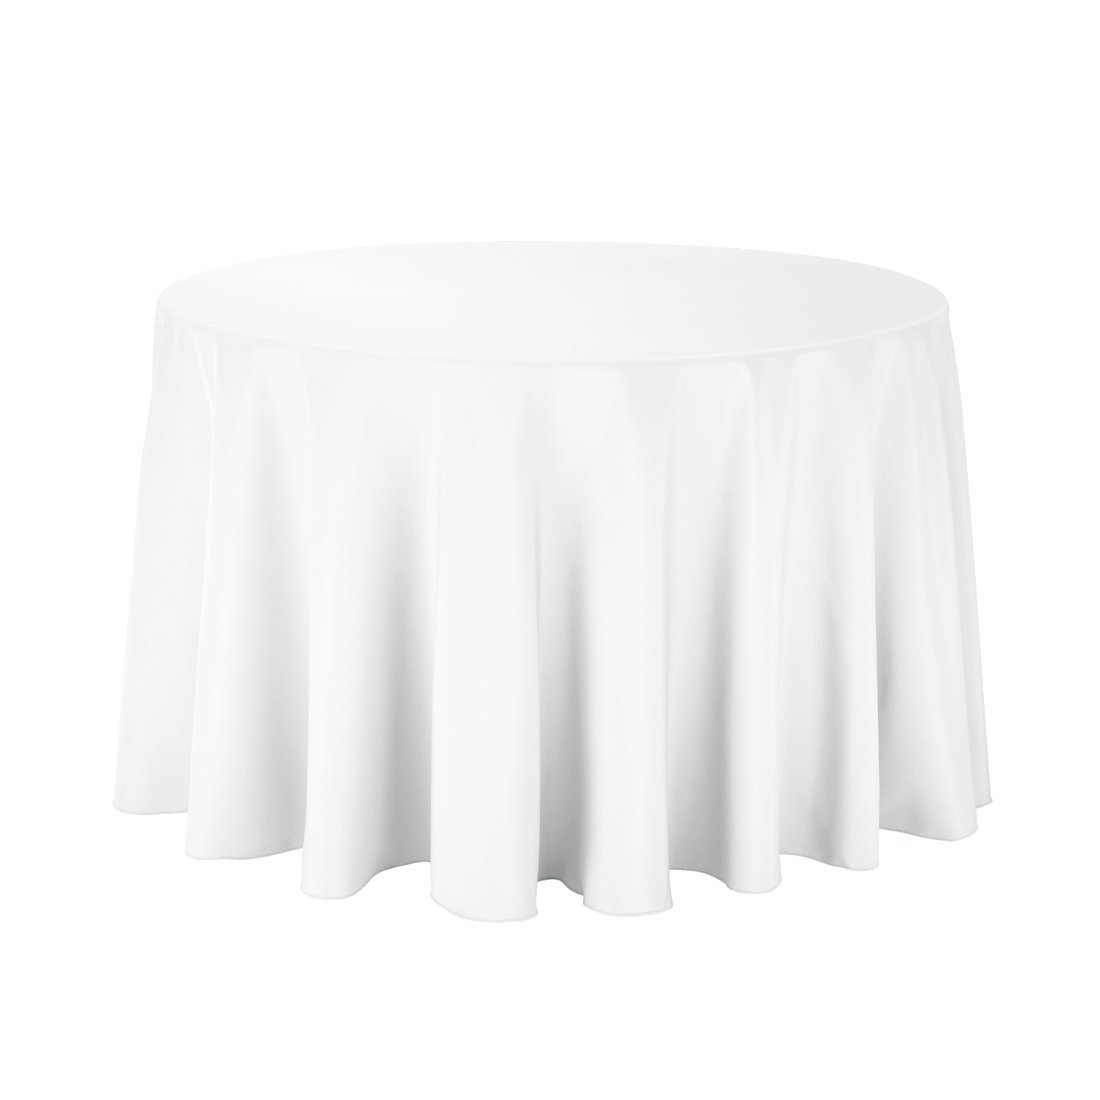 Gee Di Moda Tablecloth - 108'' Inch Round Tablecloths for Circular Table Cover in White Washable Polyester - Great for Buffet Table, Parties, Holiday Dinner & More